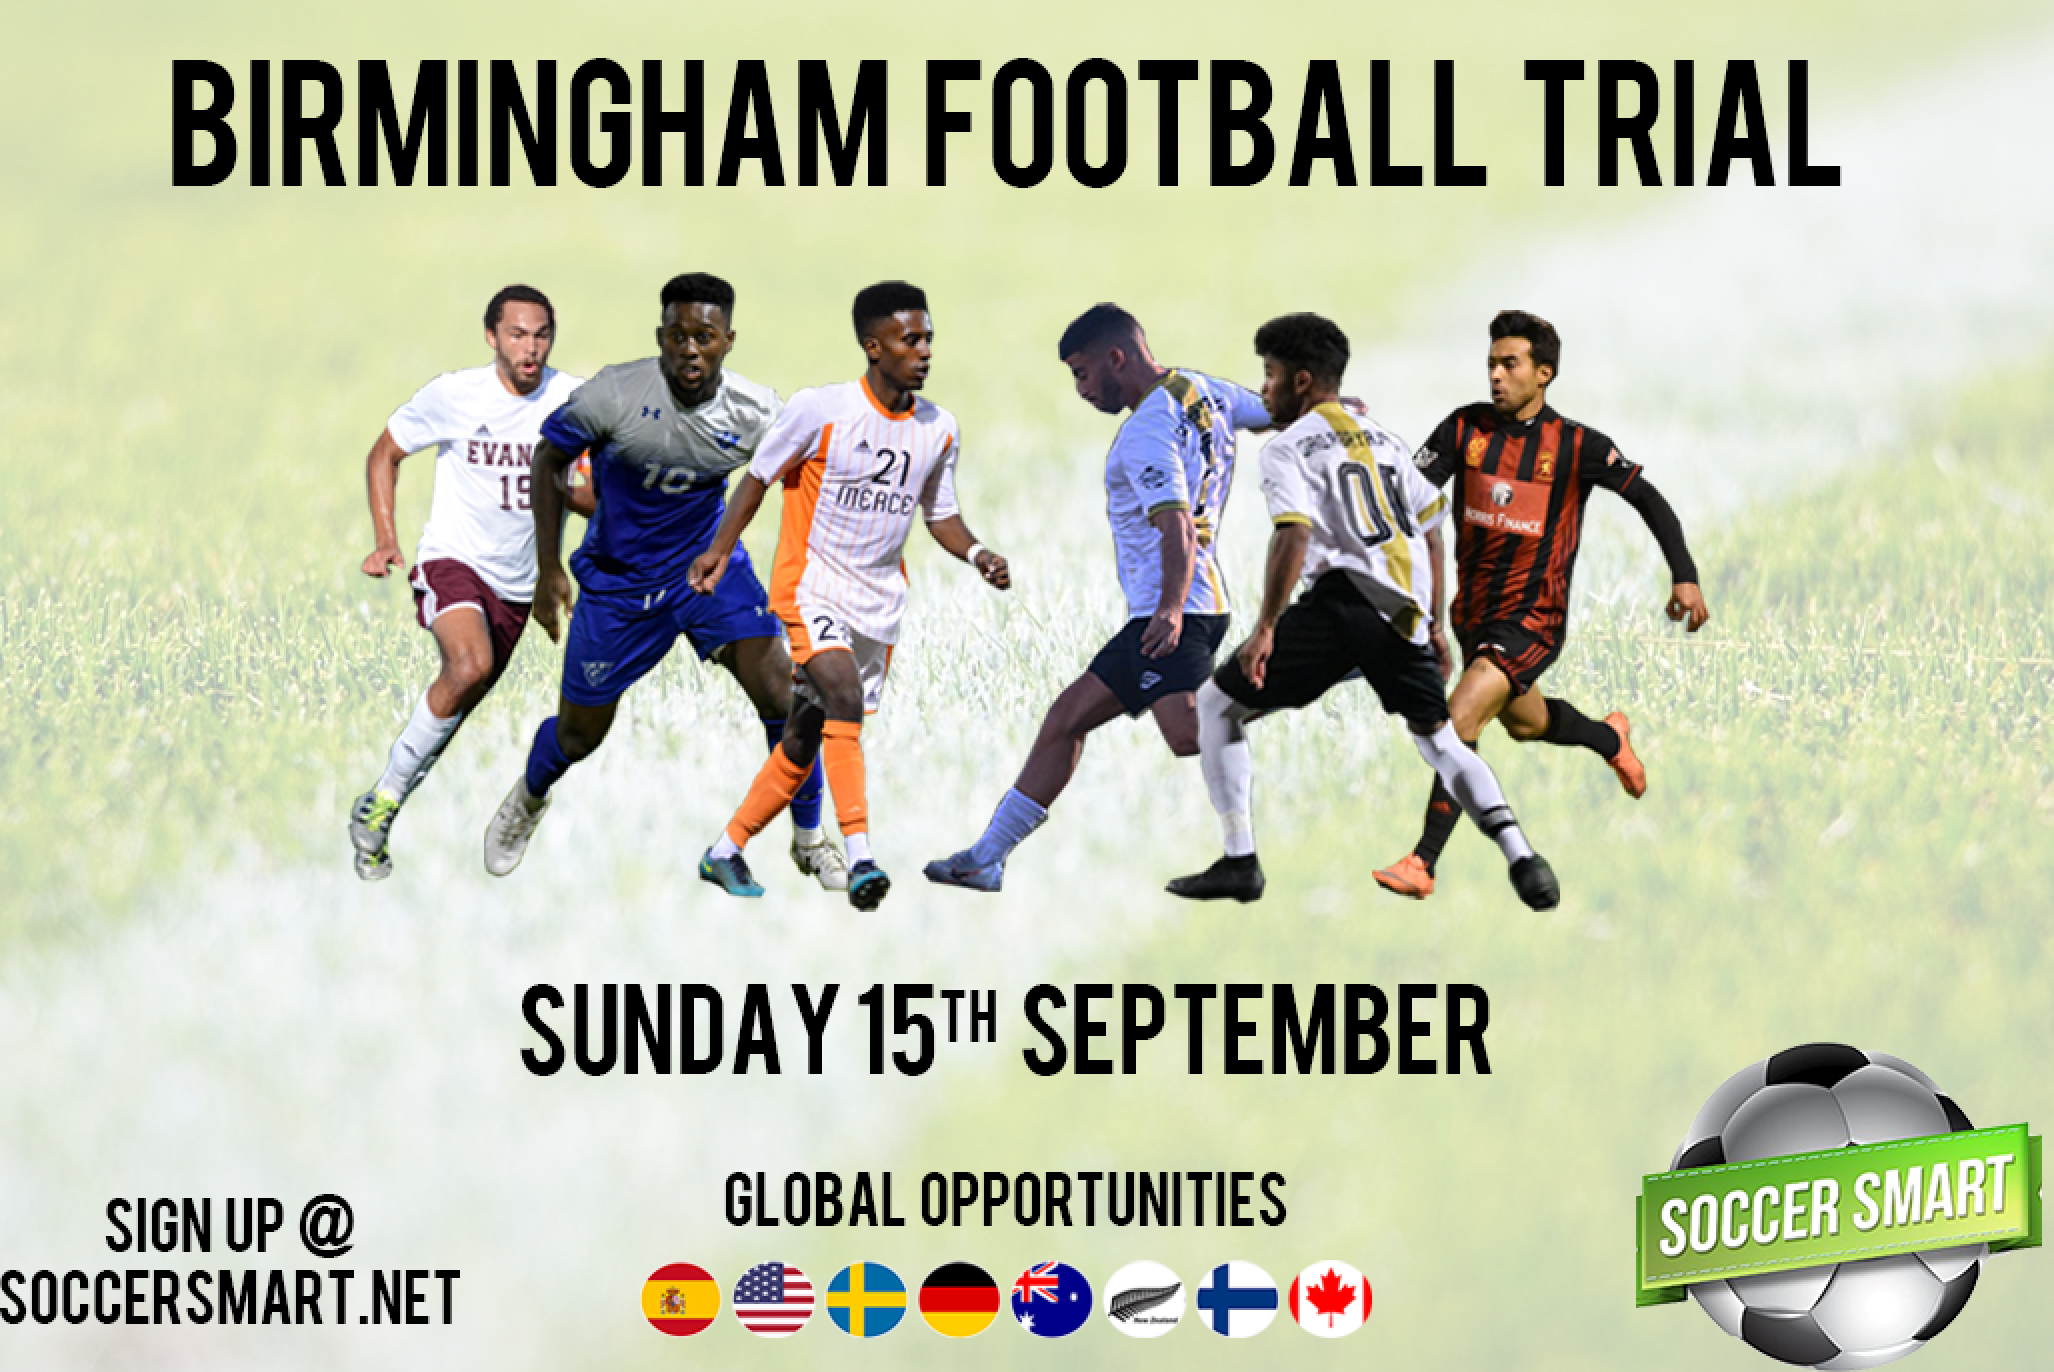 Our Birmingham trial is next month, make sure you sign up!